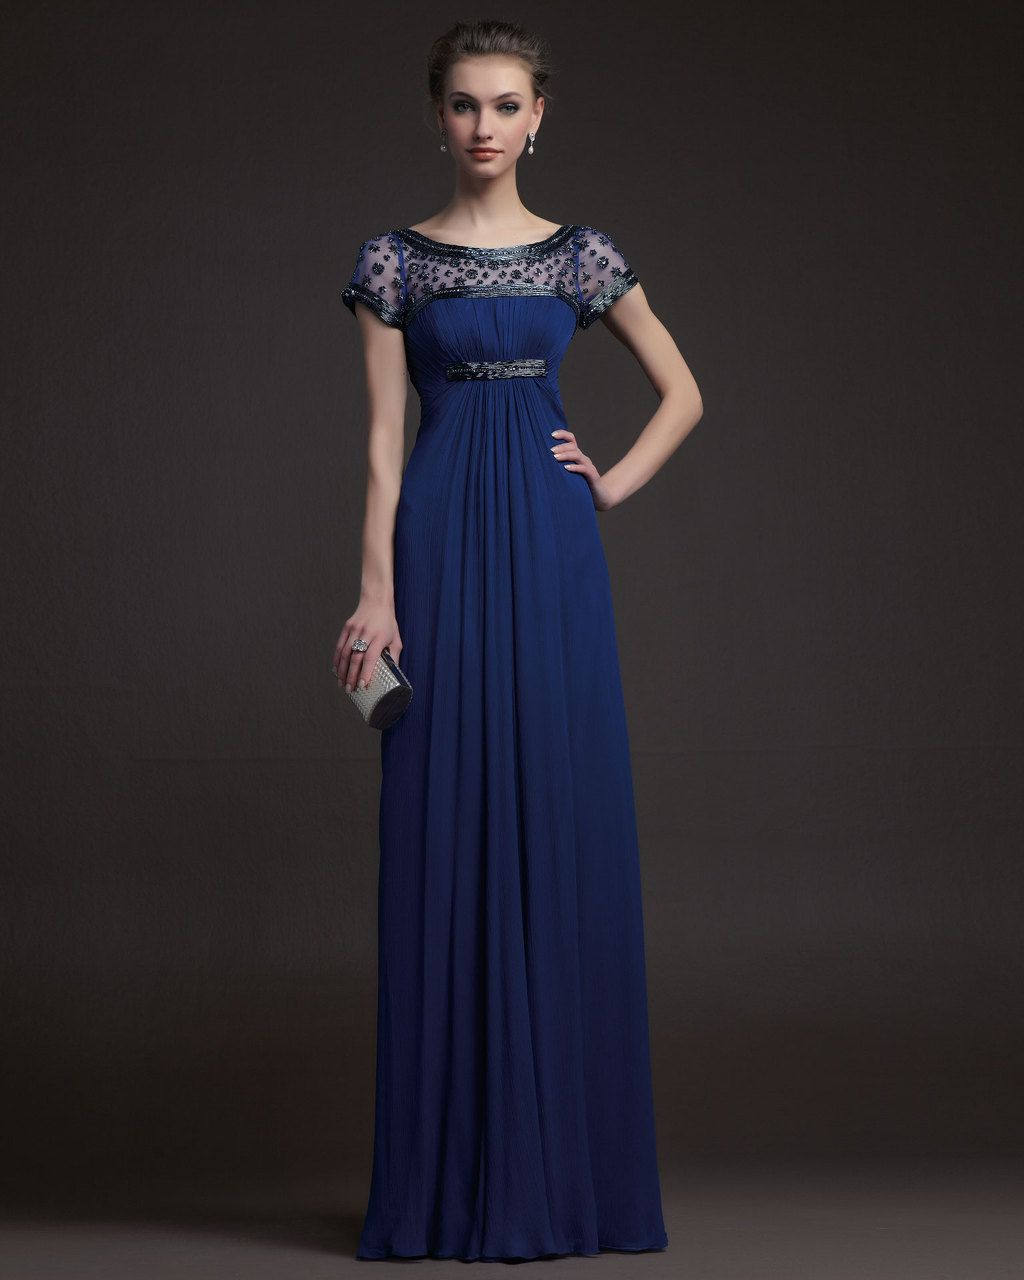 Gorgeous bridesmaid dresses from aire barcelona navy beaded